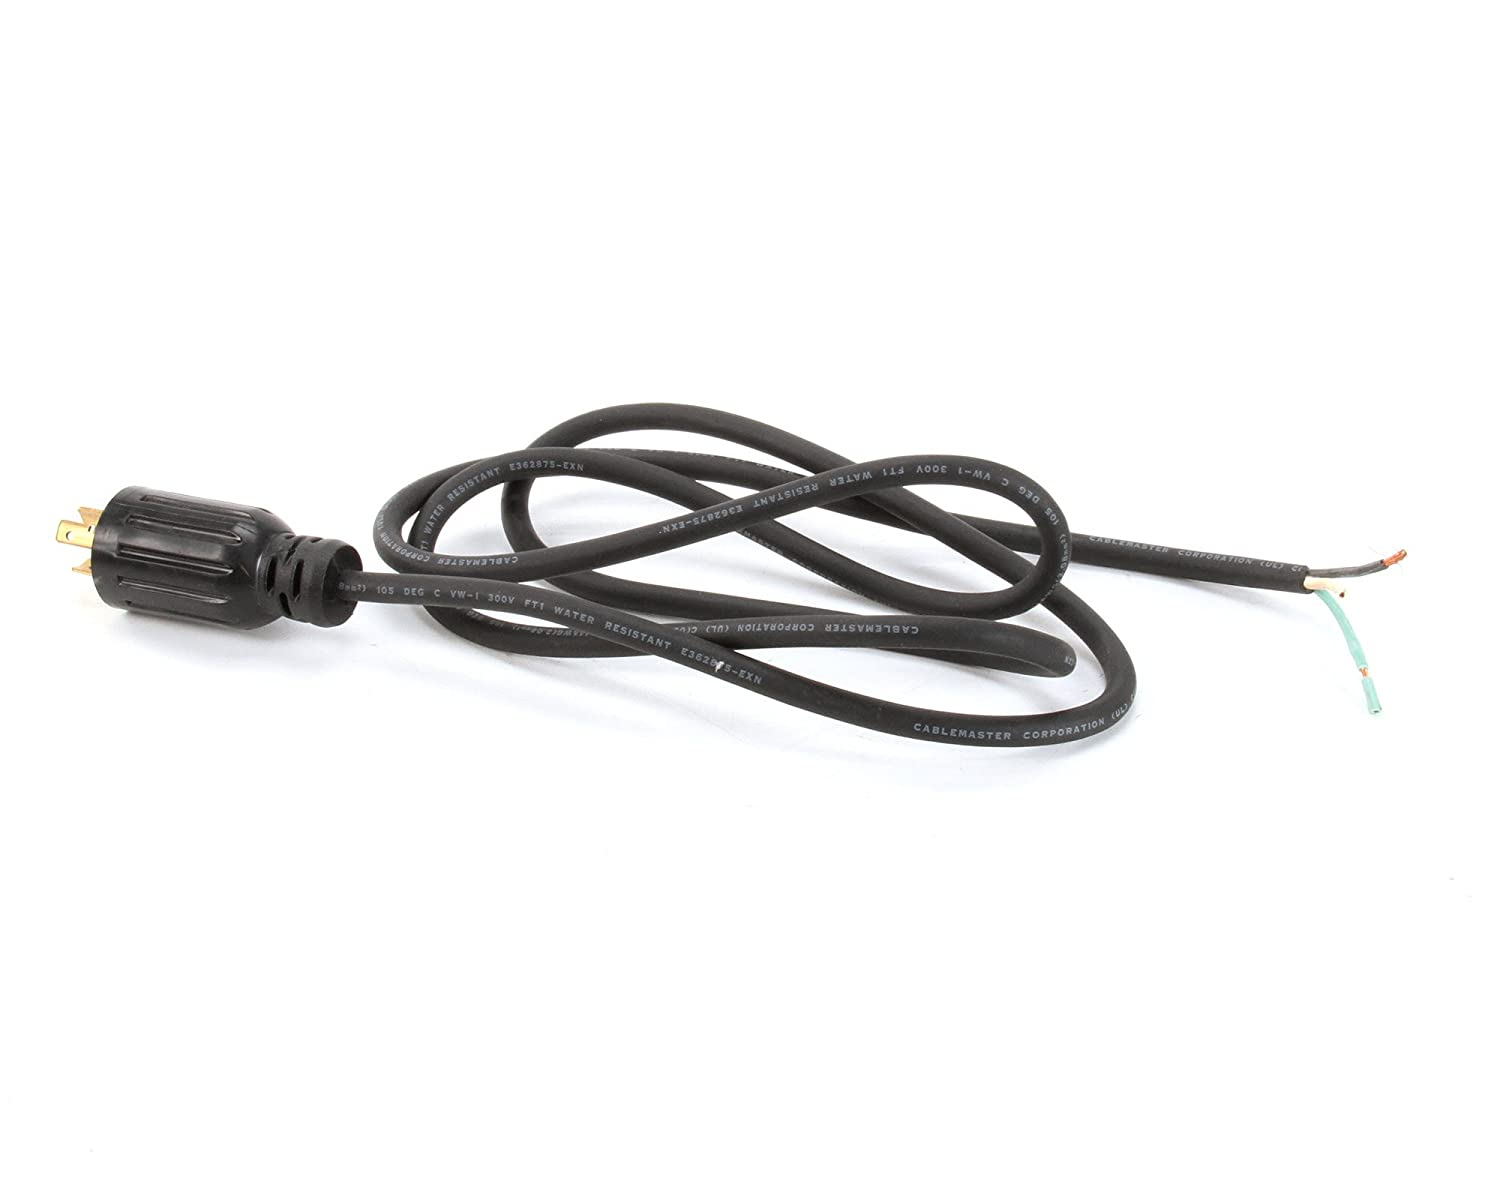 Middleby 49975 Cord  and  Plug Assembly